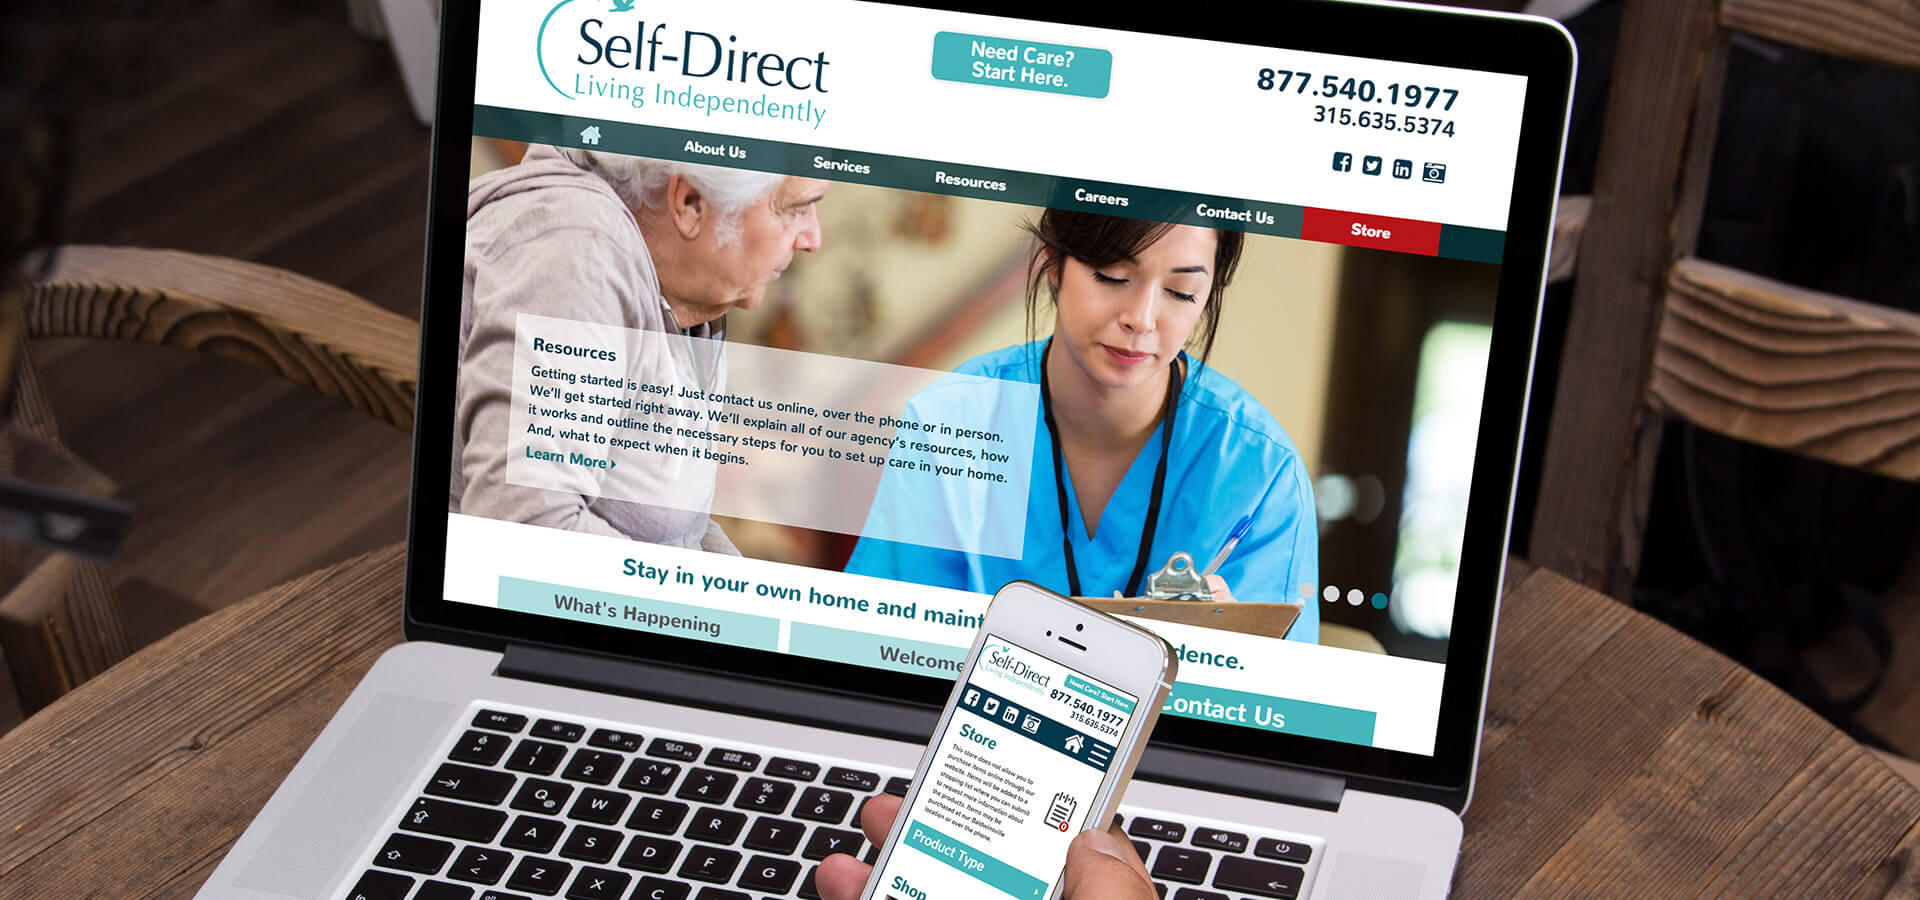 Self Direct, Inc's Website on Laptop and Mobile Phone